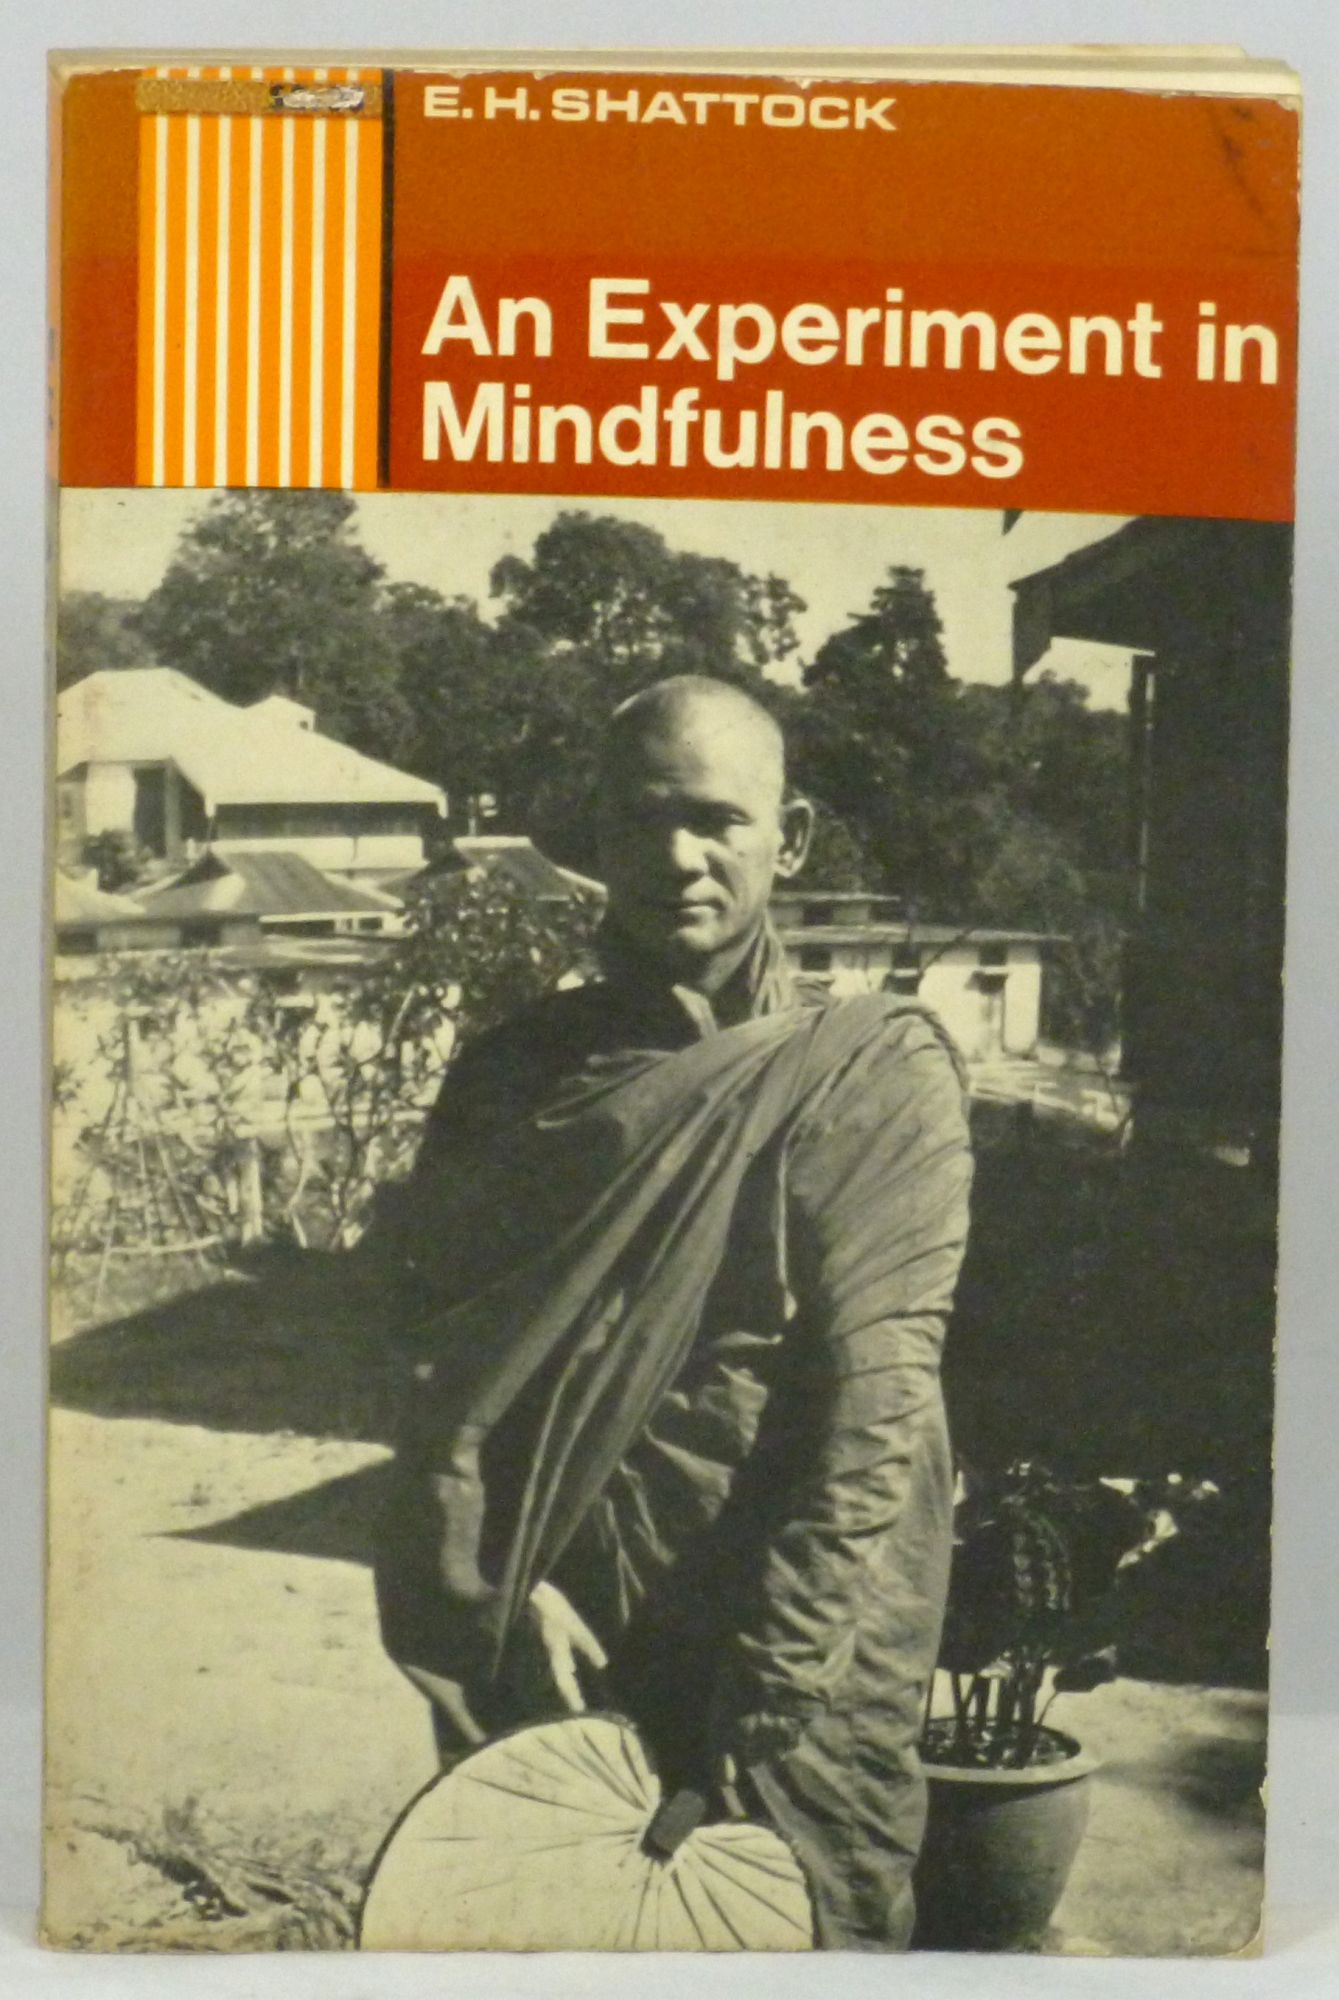 Ernest Henry Shattock. An Experiment in Mindfulness